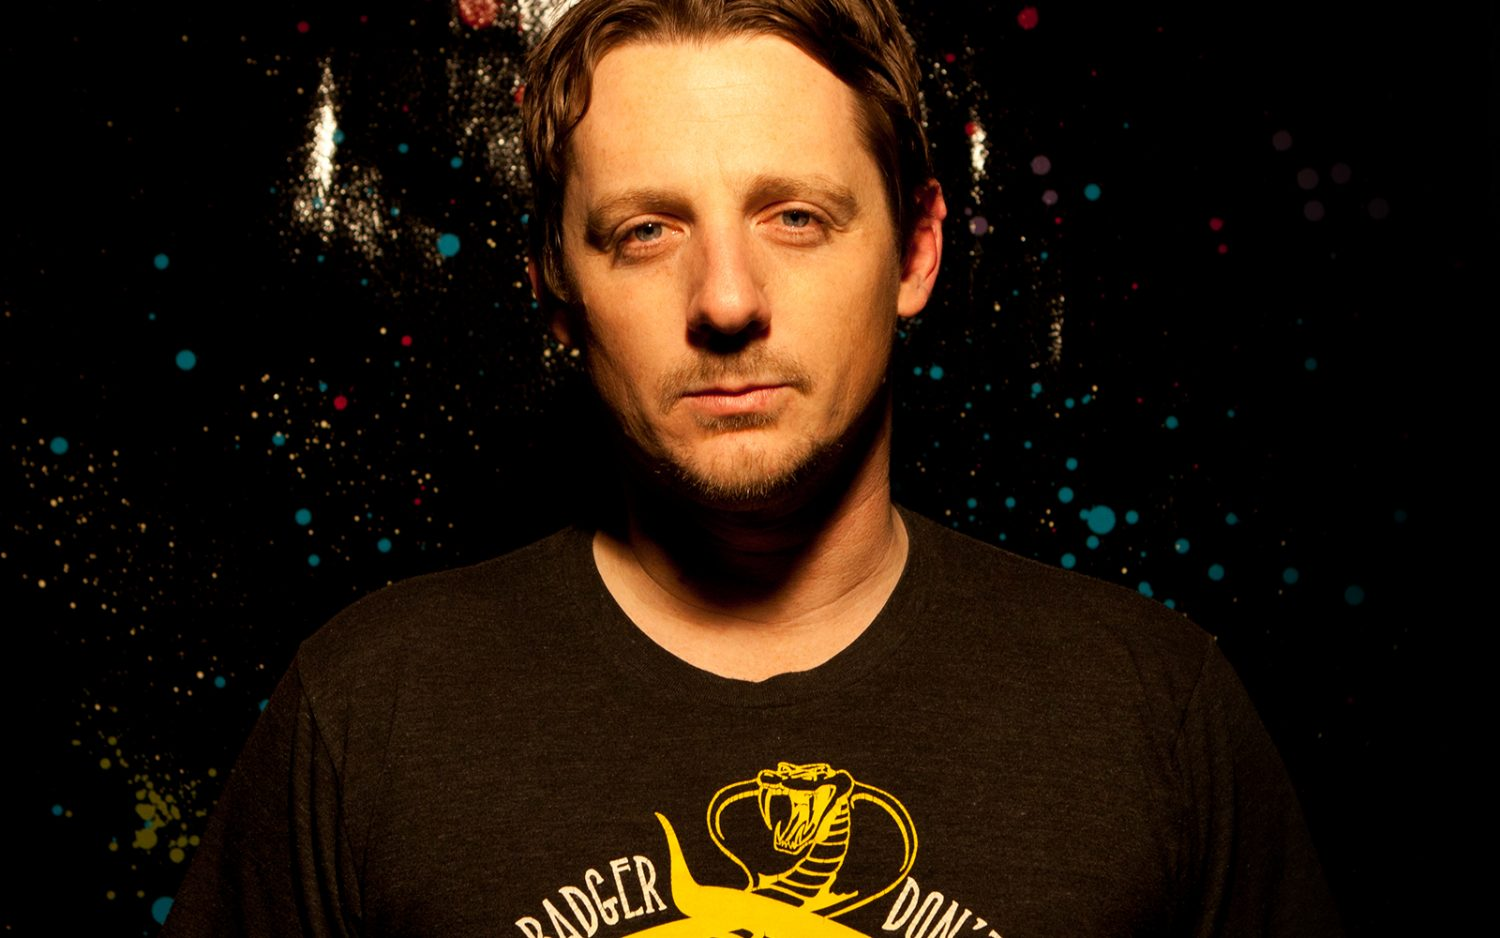 Sturgill Simpson Delivers Alt-Country Cover of T. Rex and The Osborne Brothers